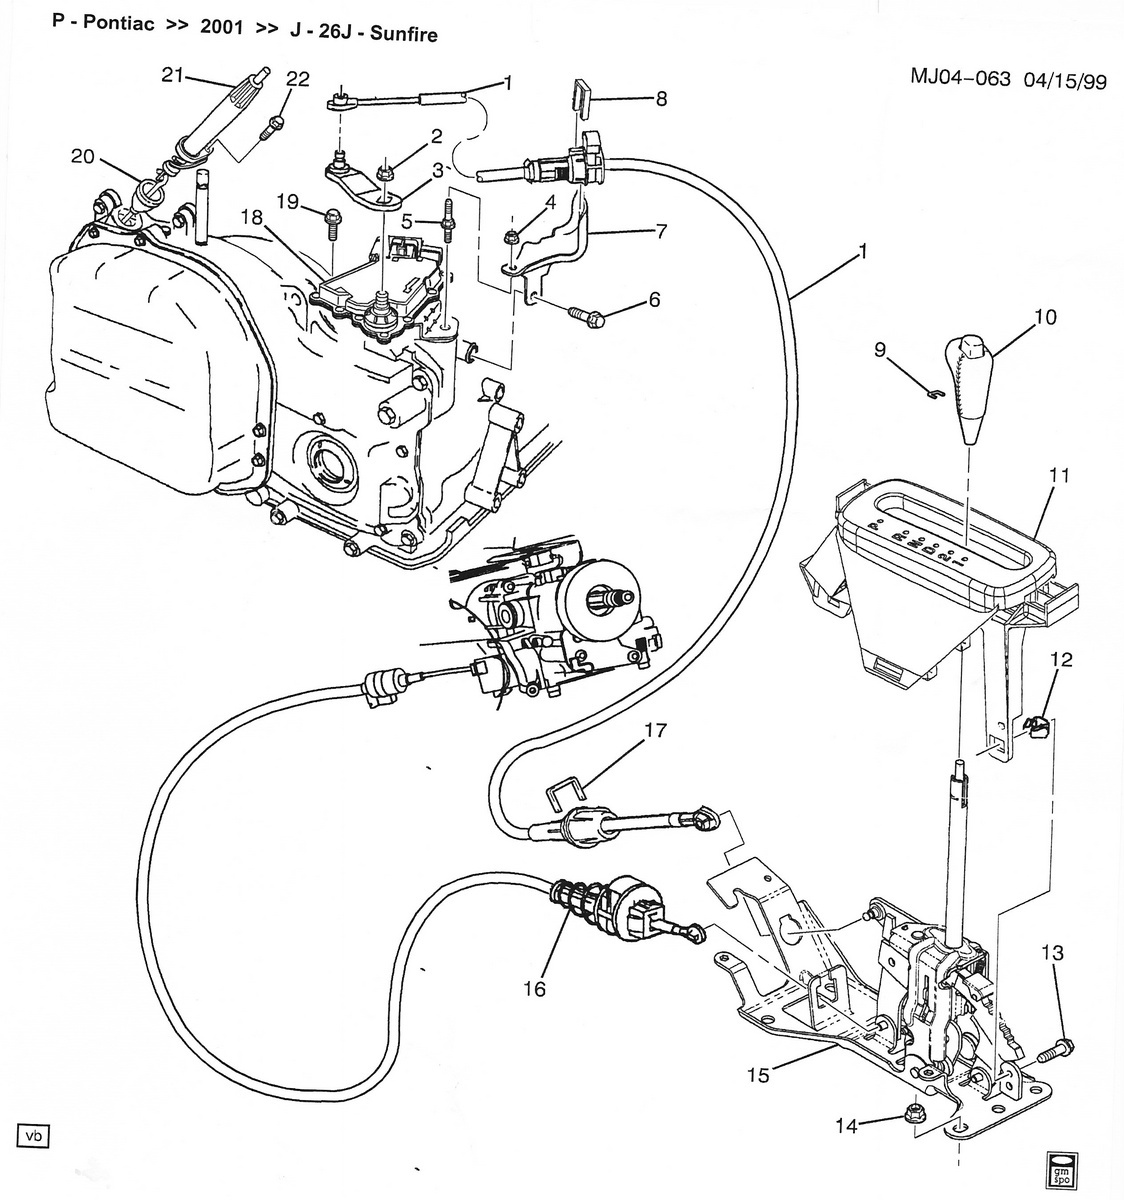 Wiring Diagram Furthermore 2000 Chevy Blazer Trailer Wiring Diagram